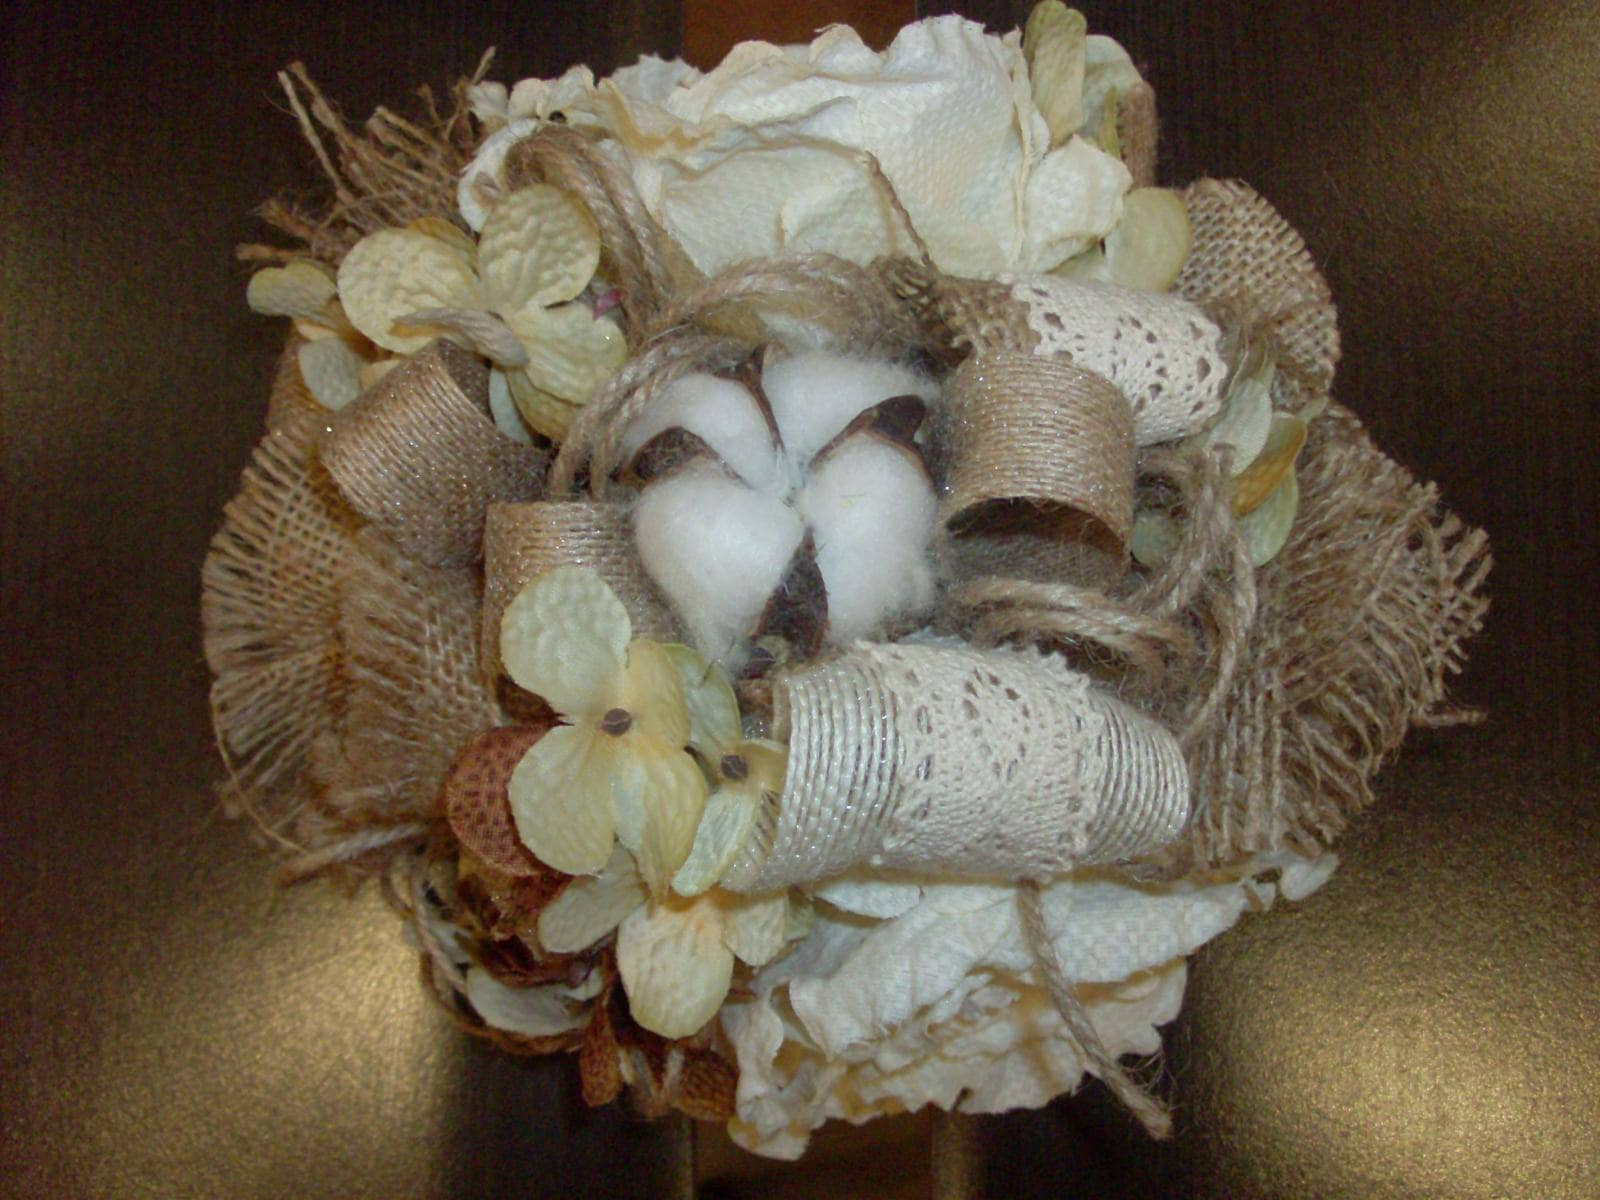 Burlap bridesmaid bouquet rustic wedding ivory tan burlap lace burlap bridesmaid bouquet rustic wedding ivory tan burlap lace silk flowers corsage western or country shabby chic vintage izmirmasajfo